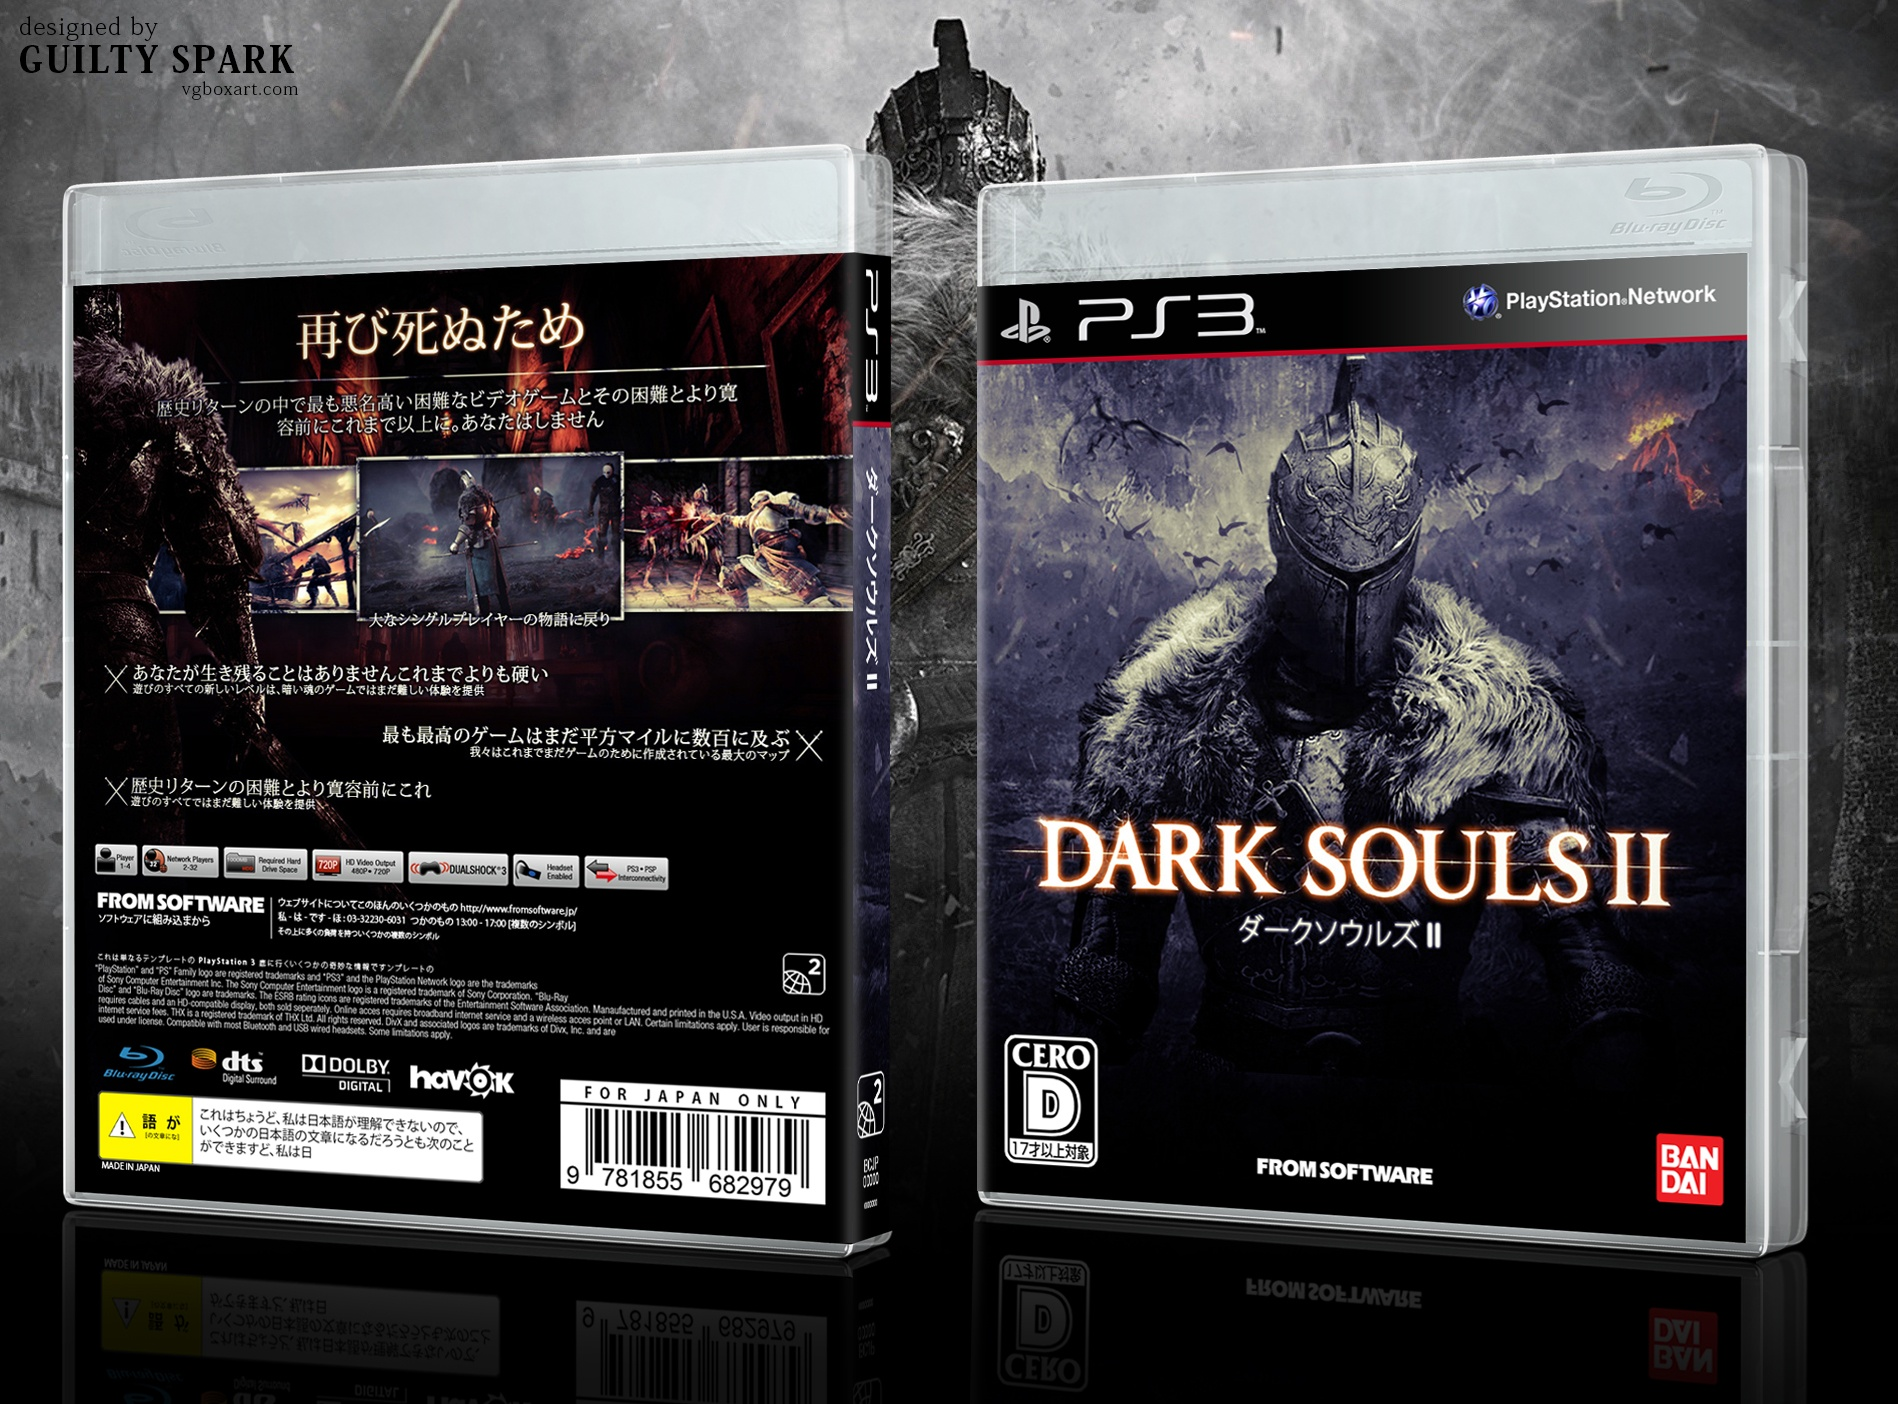 dark souls ii playstation 3 box art cover by guilty spark